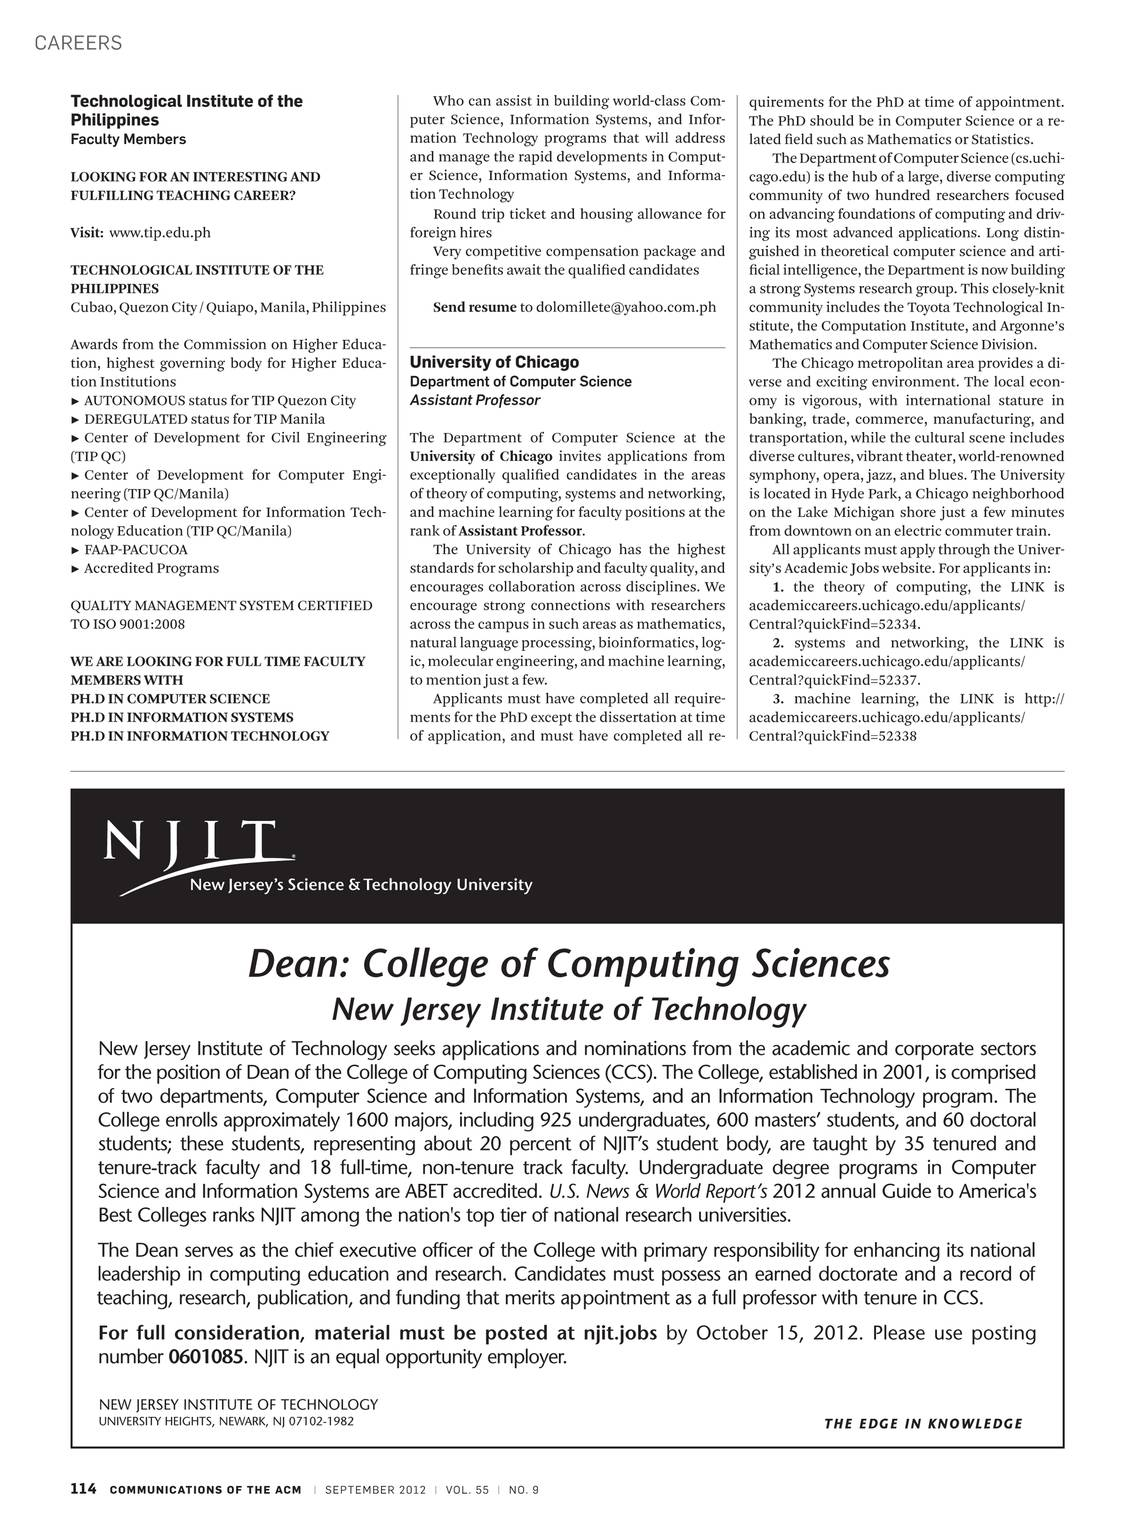 Communications September 2012 Page 113